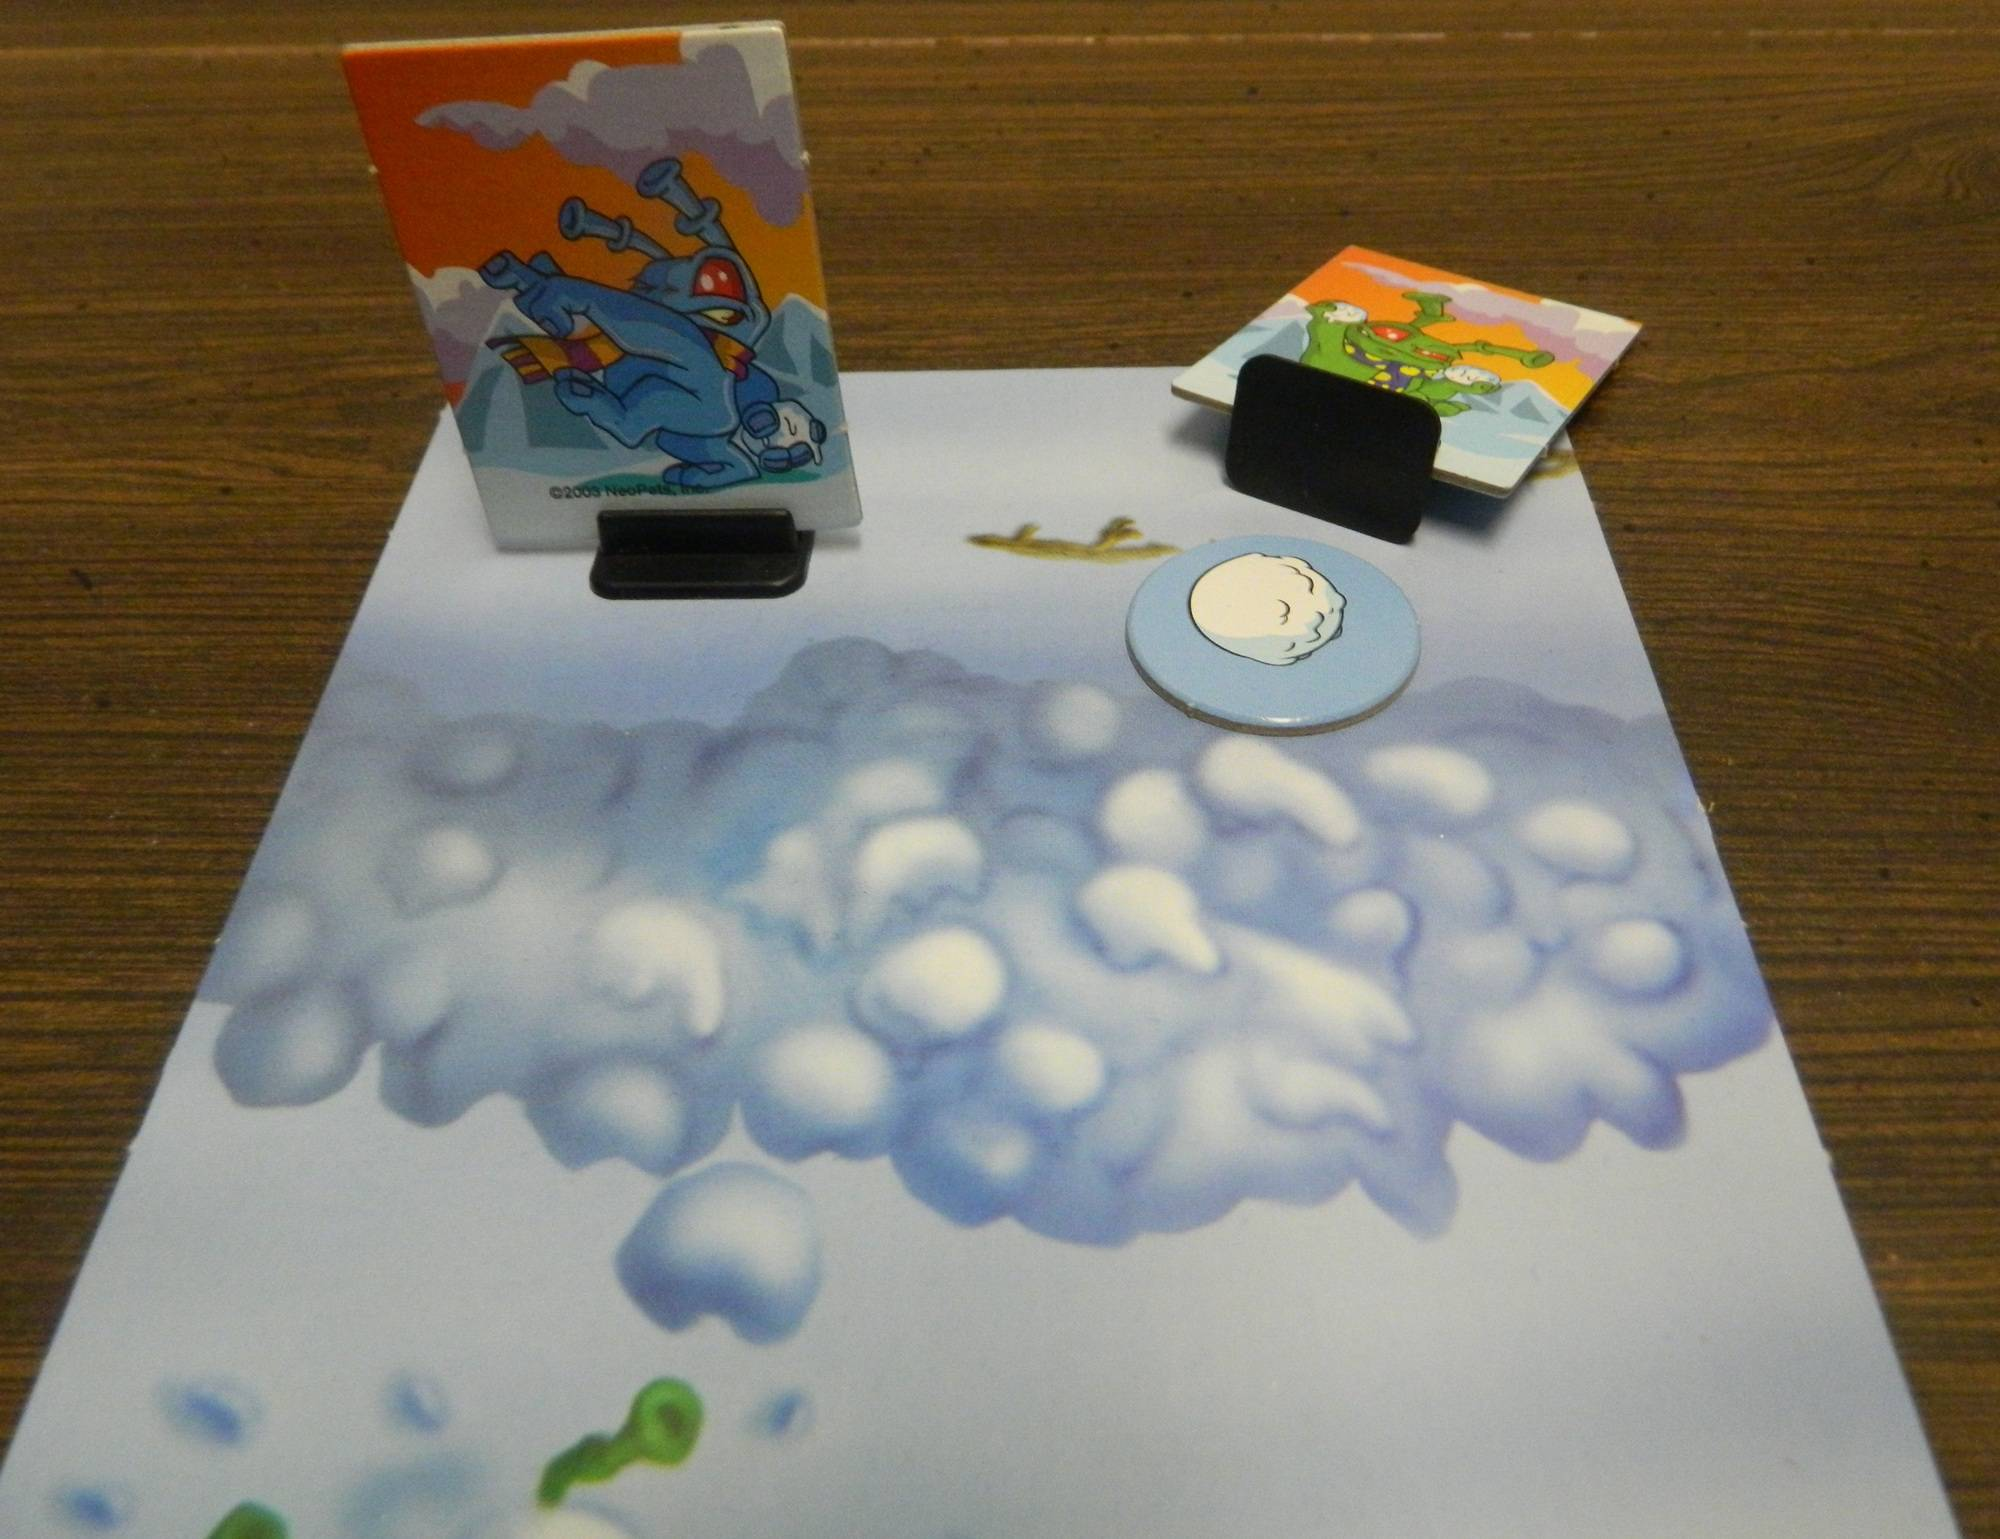 Neopets Adventures In Neopia Board Game Review And Rules Geeky Hobbies